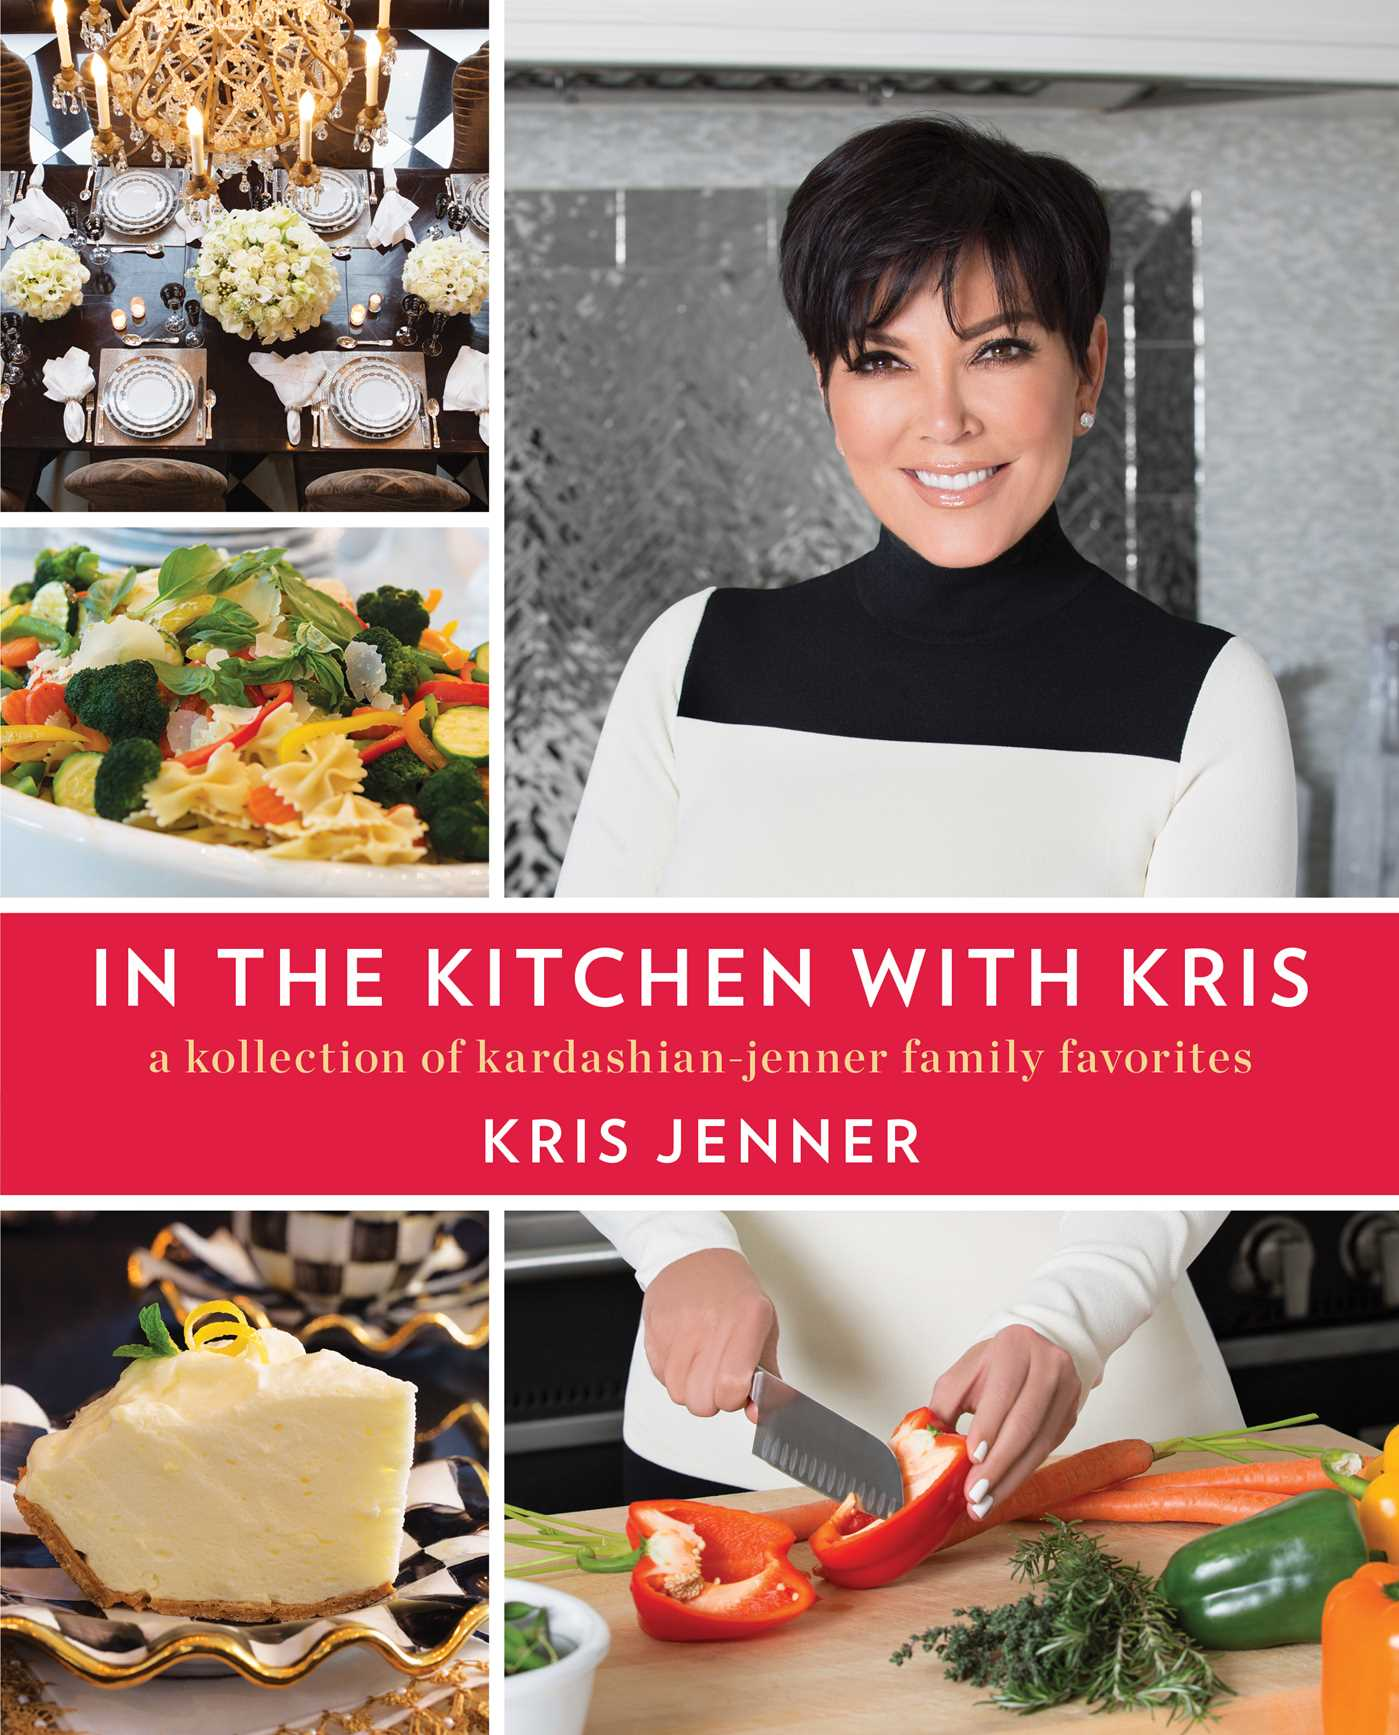 In-the-kitchen-with-kris-9781476728889_hr